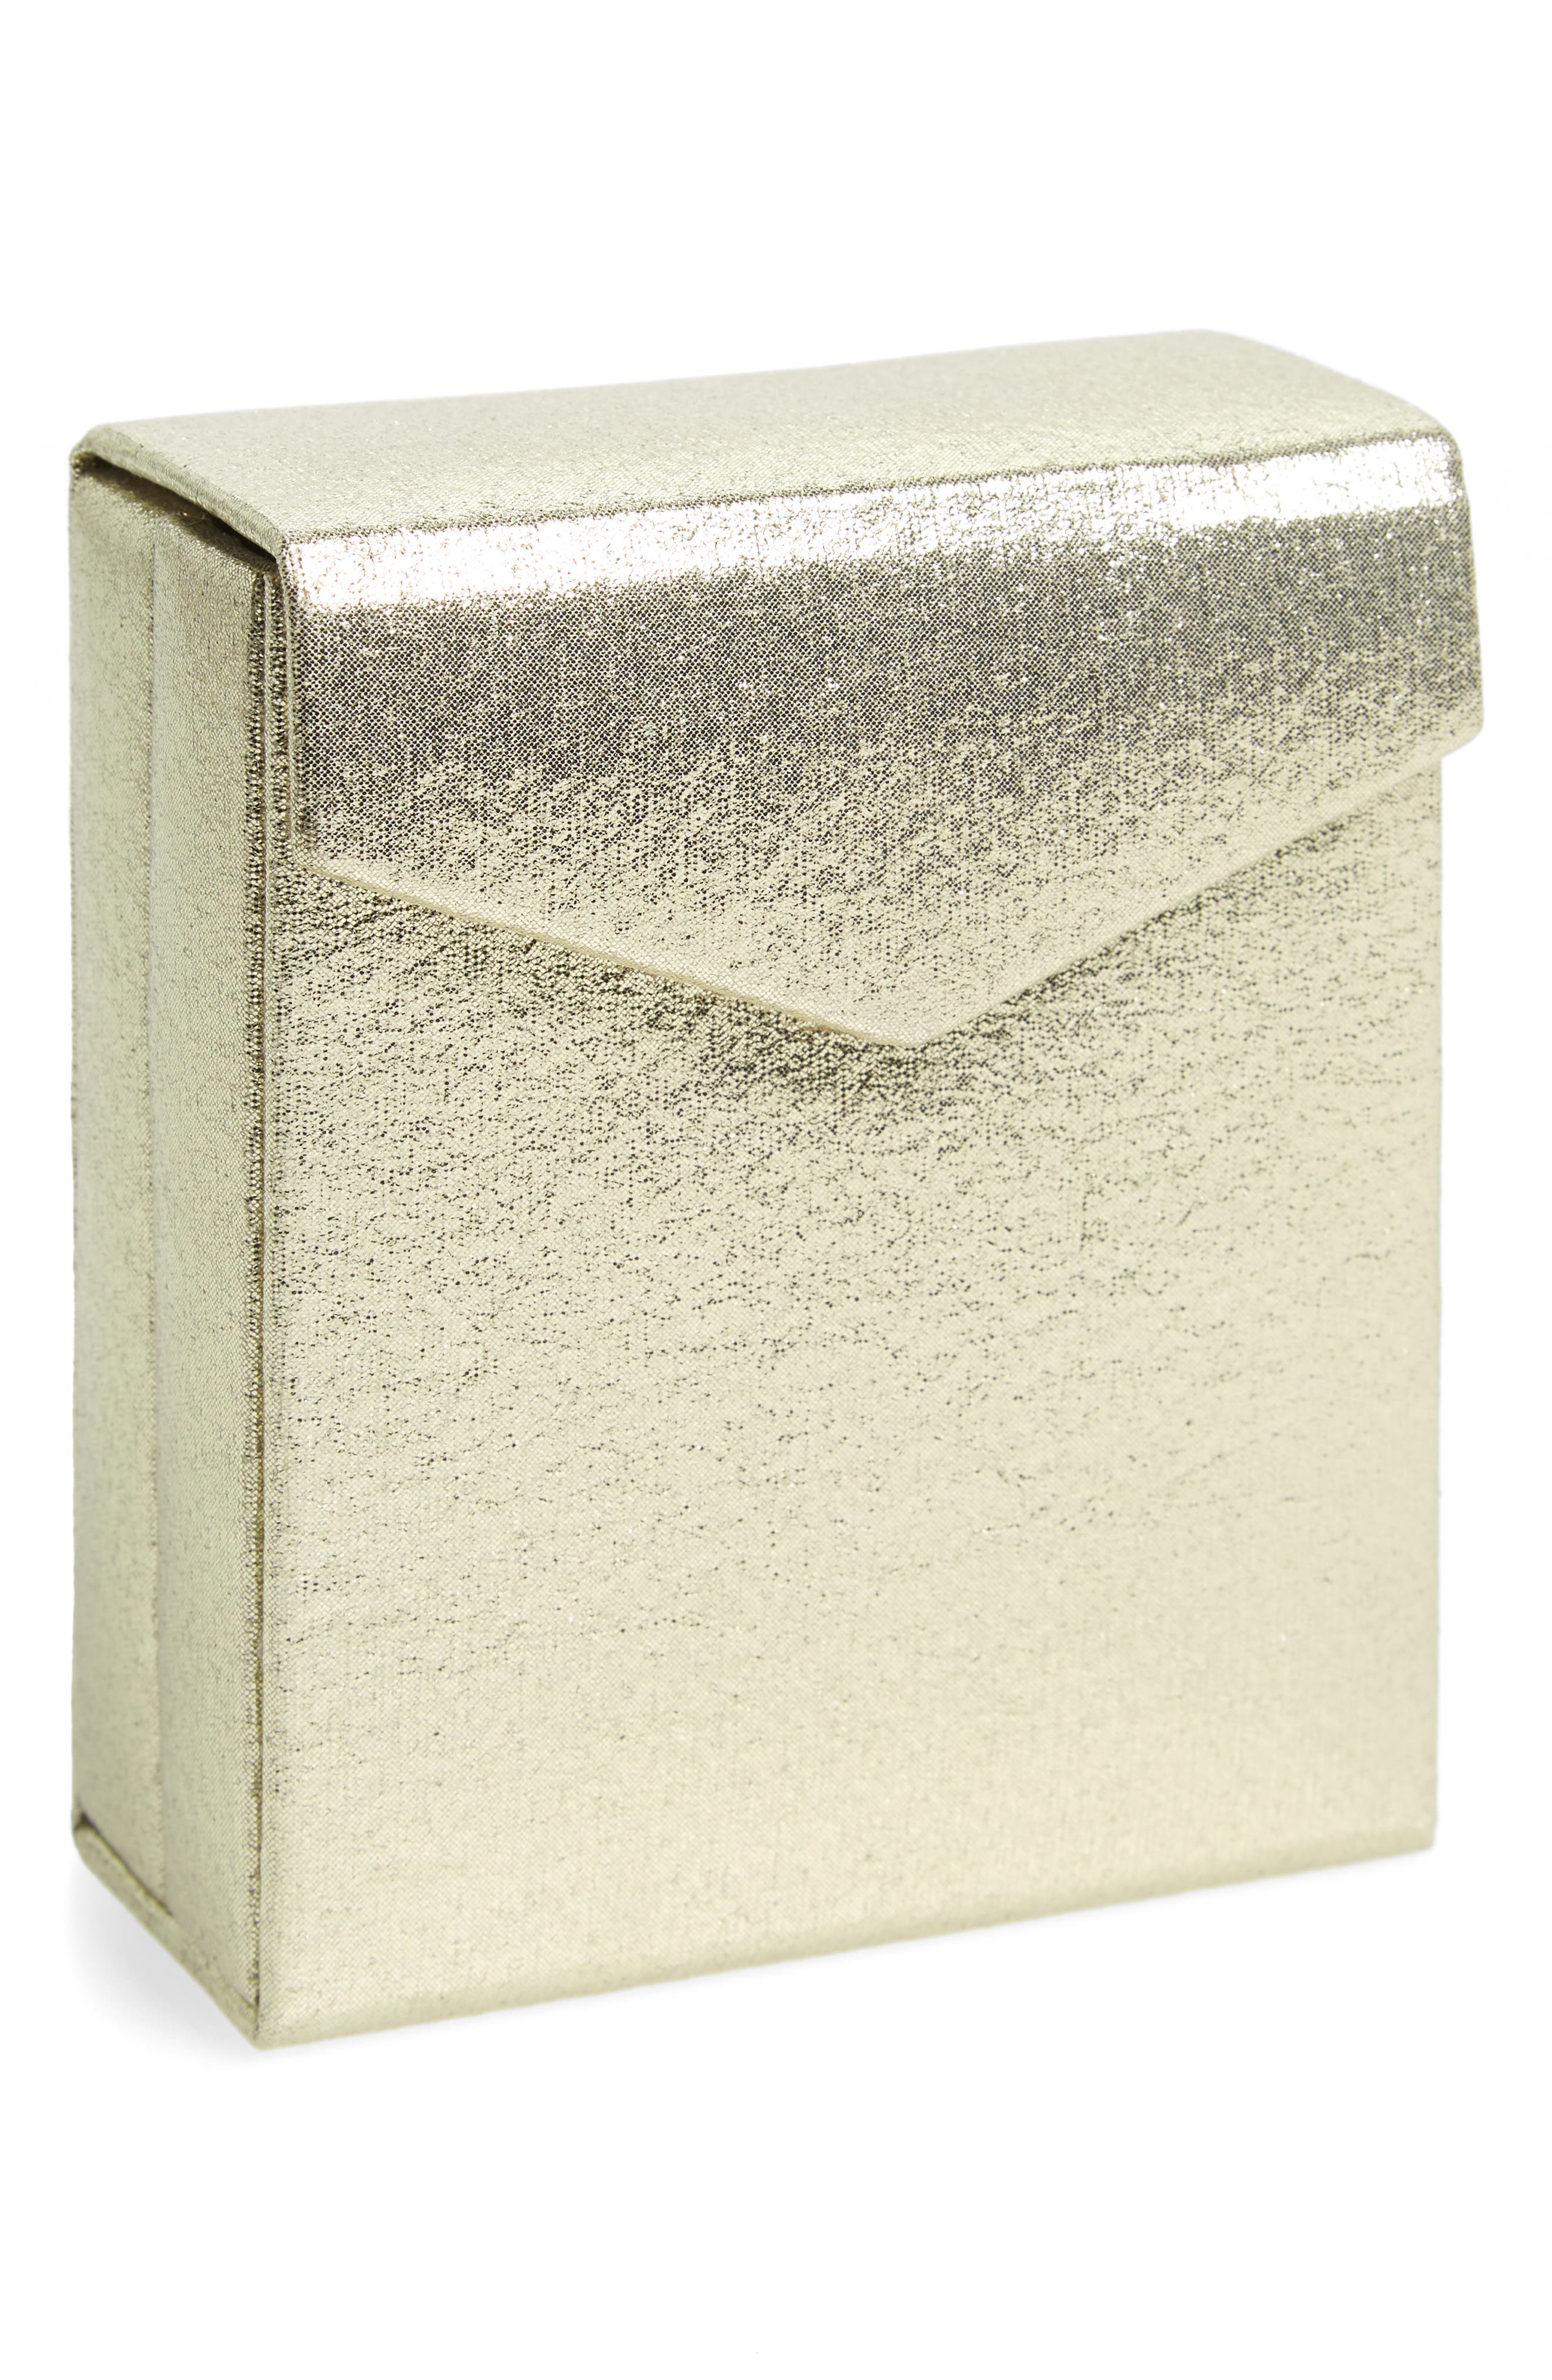 Nordstrom Fold-Up Jewelry Travel Box -